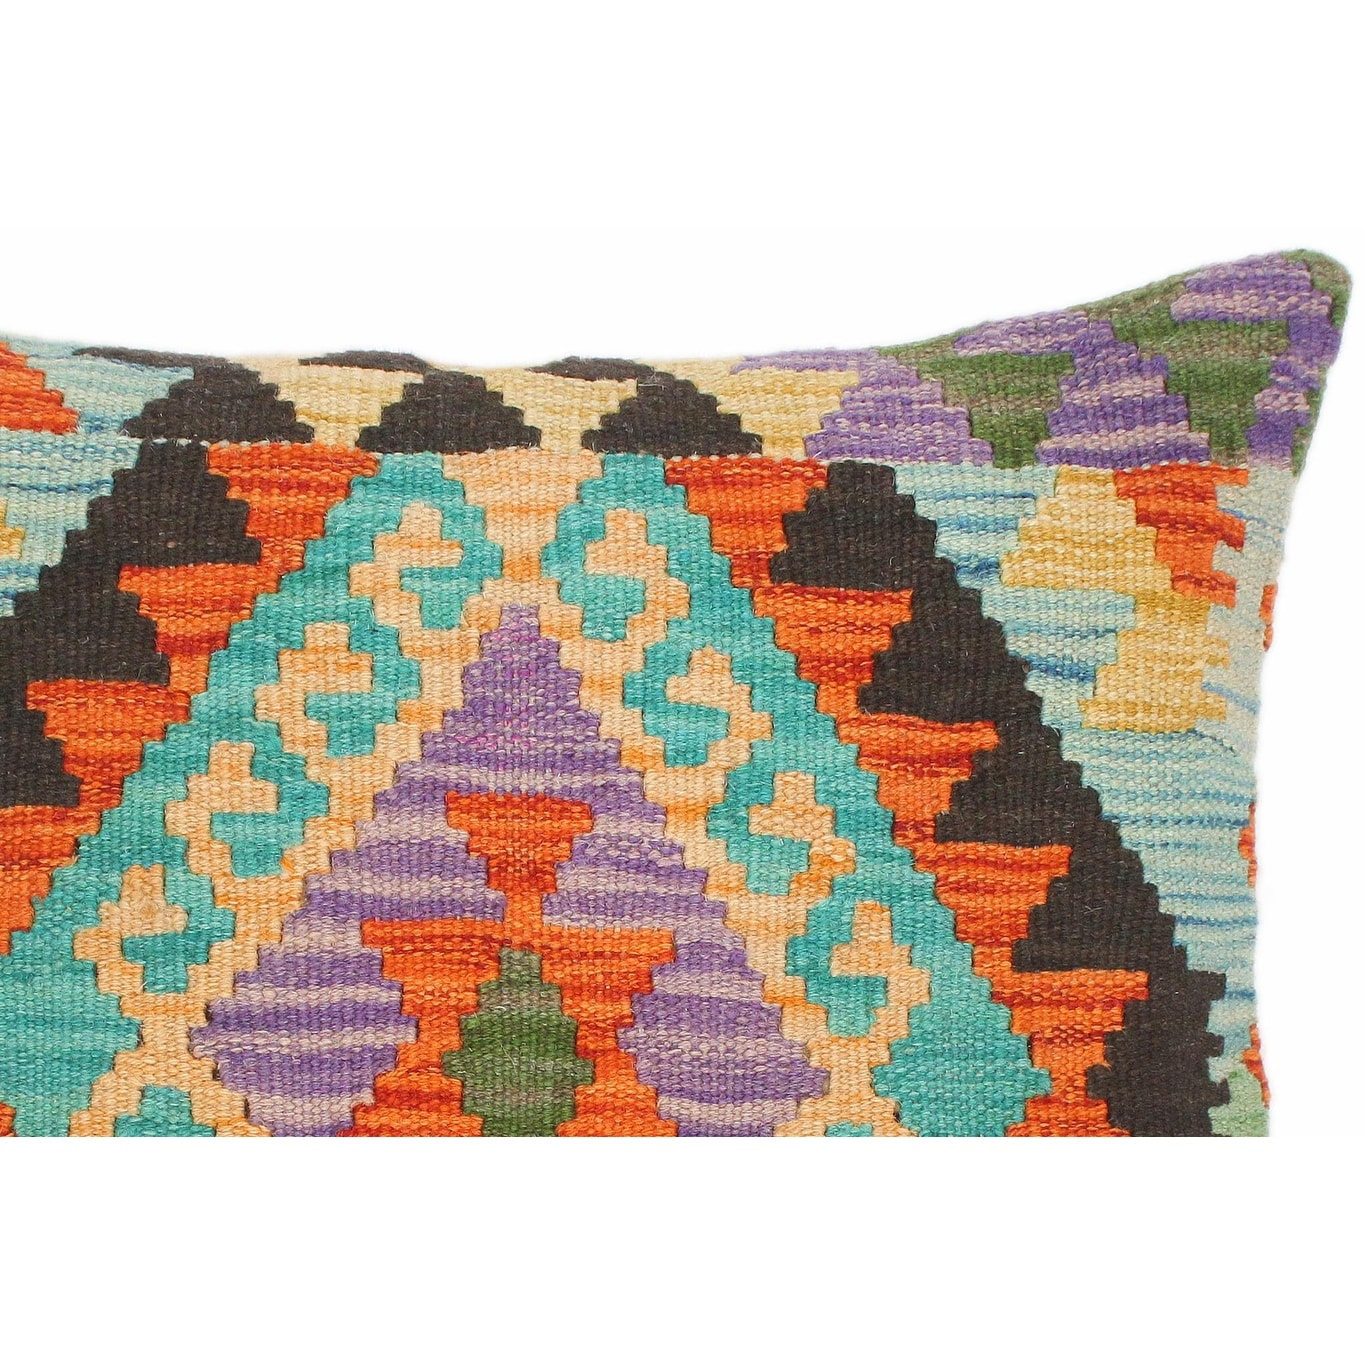 Tribal Everette Hand Woven Turkish Kilim Throw Pillow 18 In X 18 In On Sale Overstock 32524913